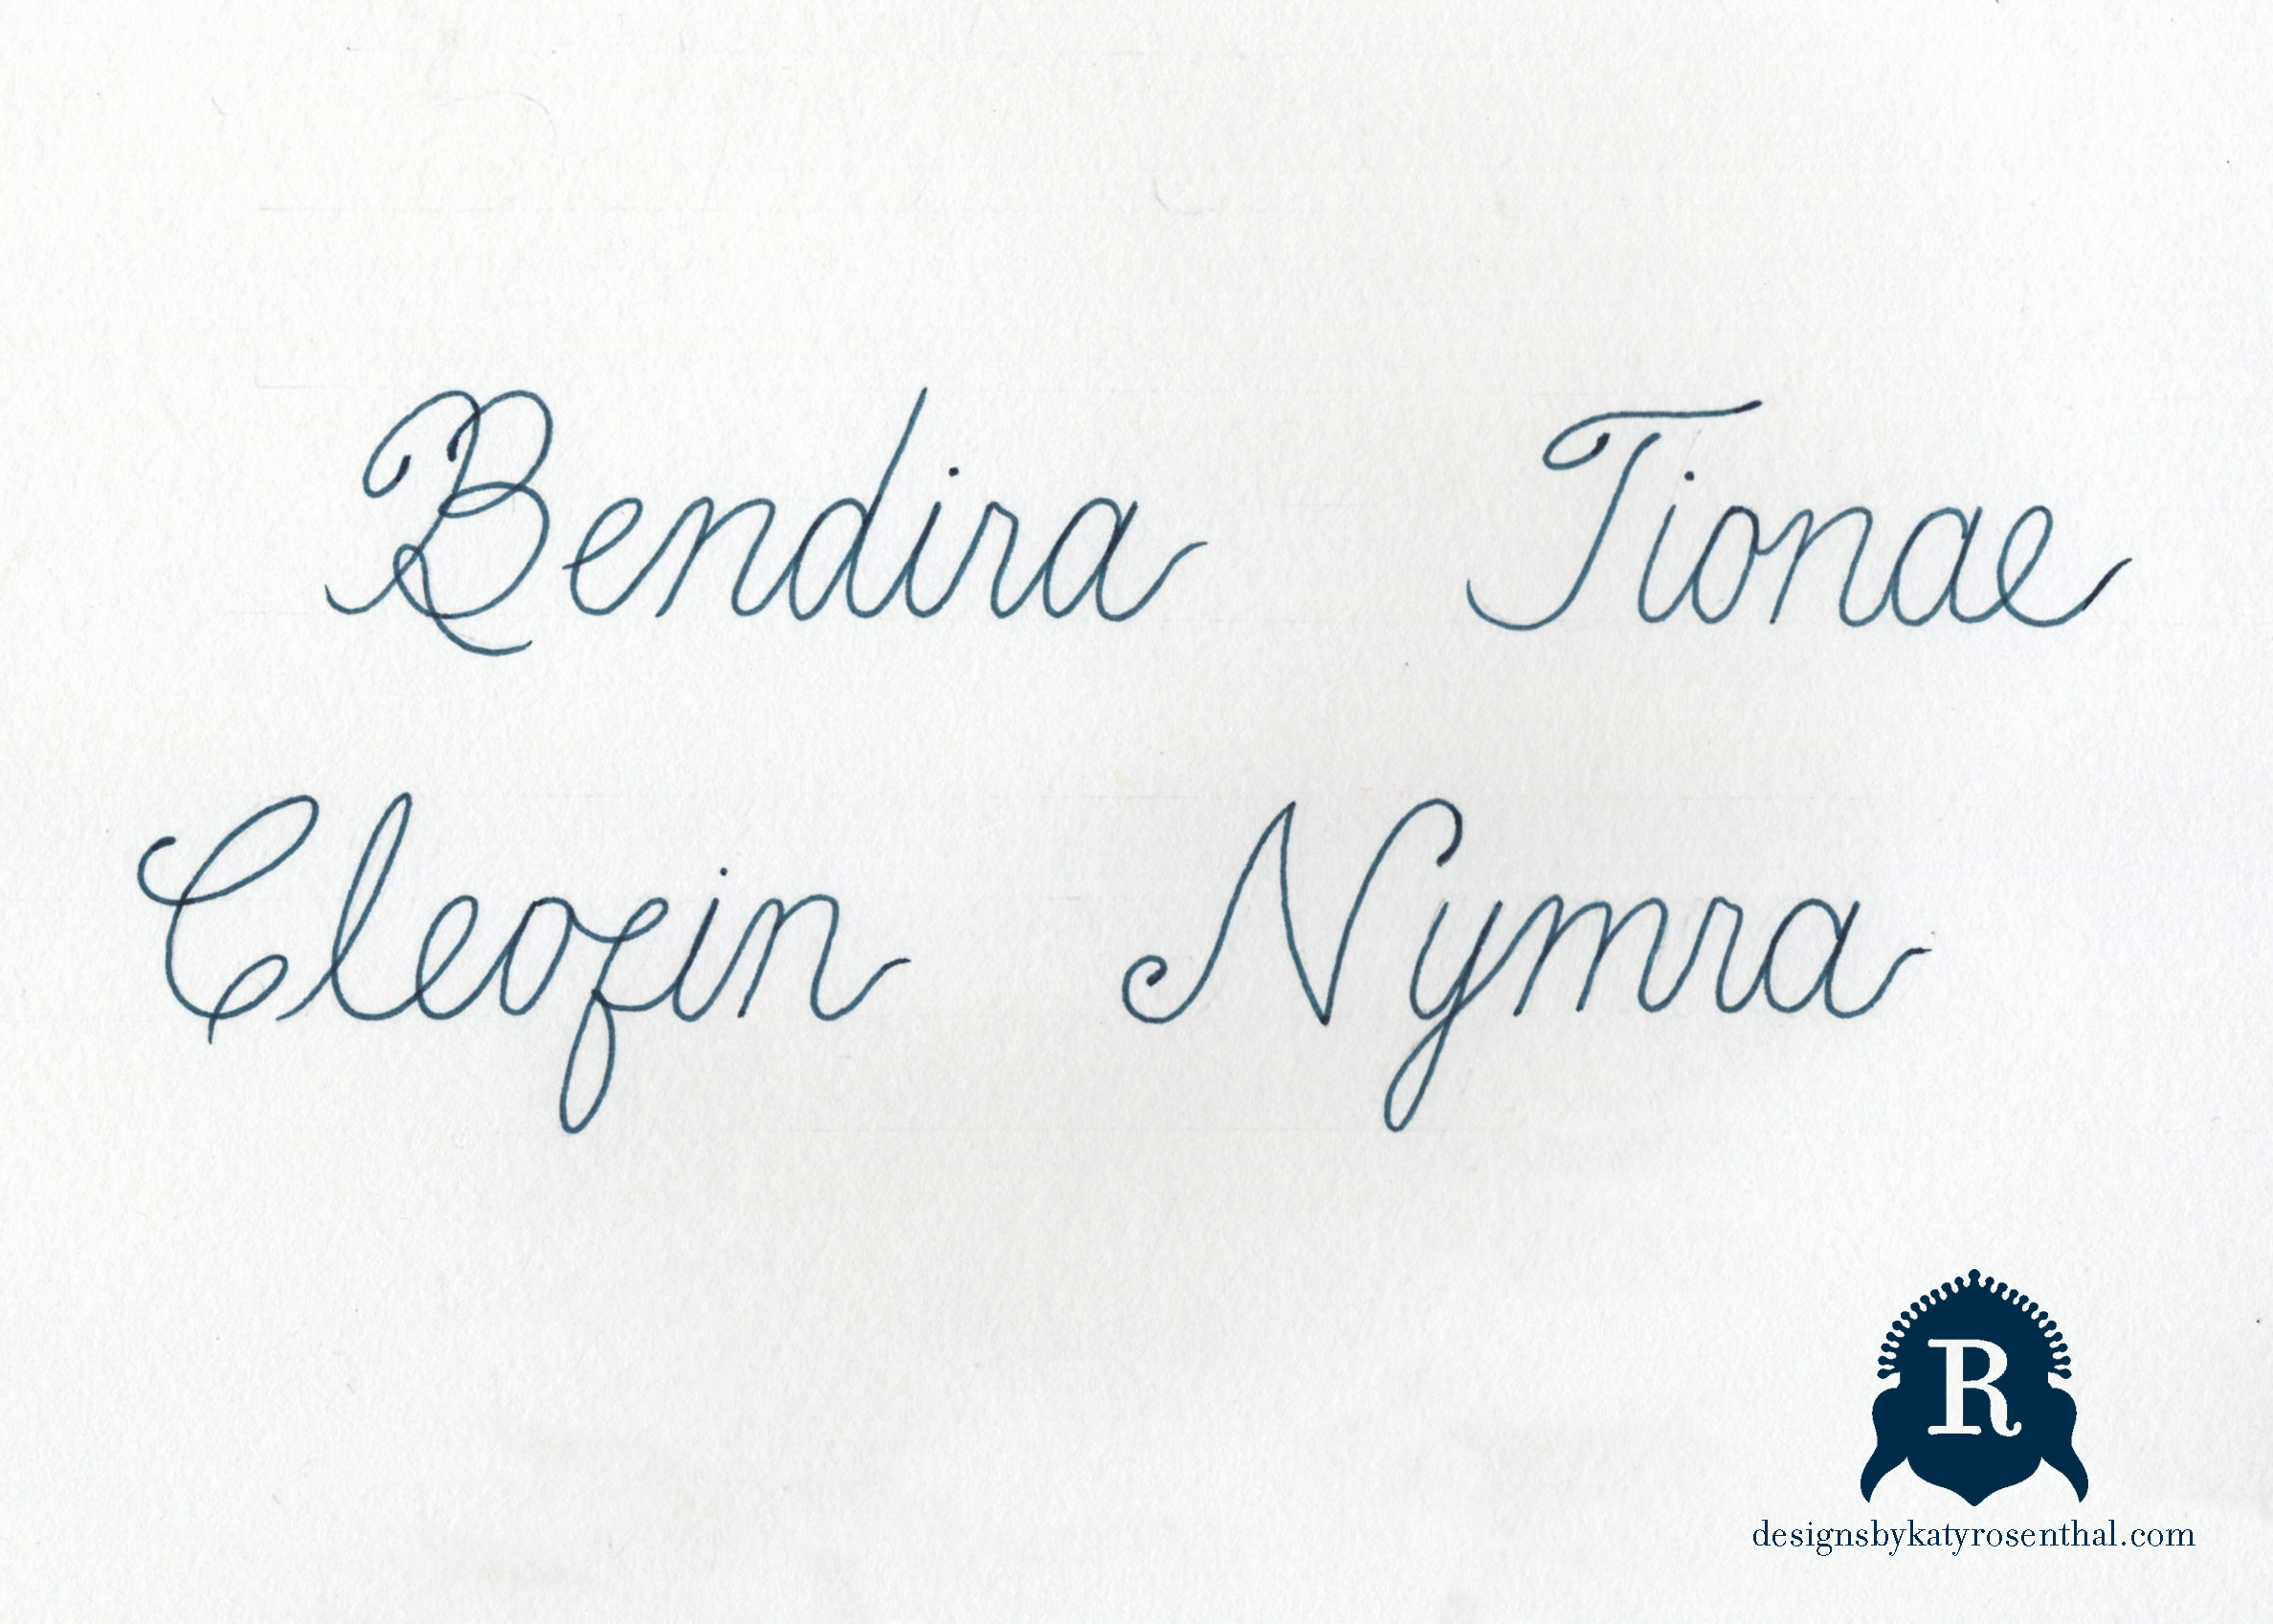 The original scan of my handwritten lettering, naming each of my invented creatures.